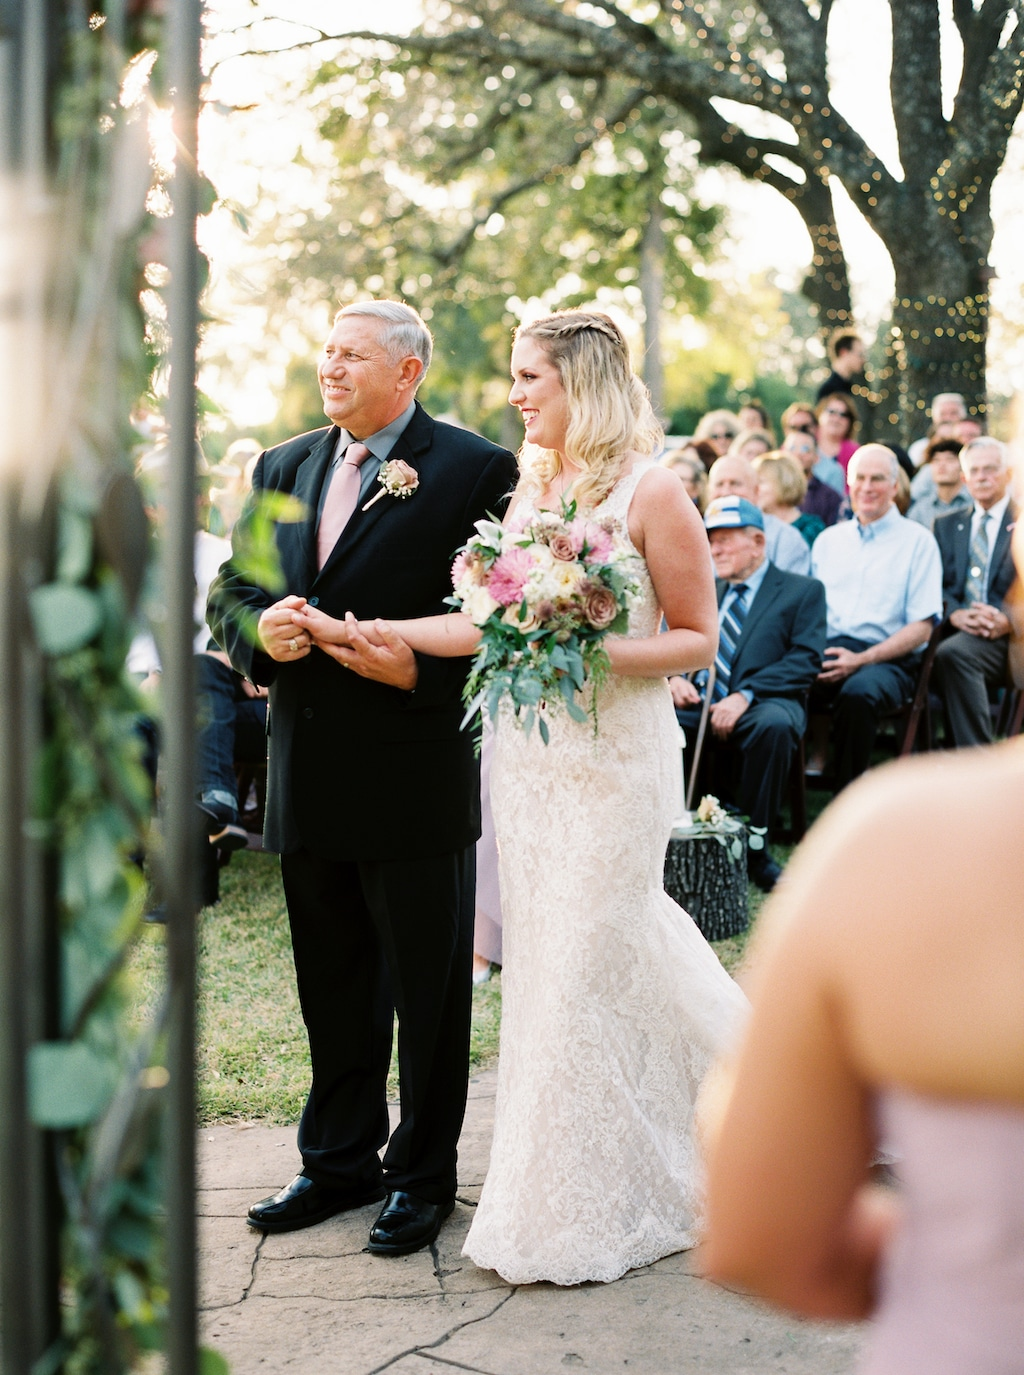 A smiling bride and her father stand at a Georgetown, Texas wedding ceremony while guests look on from behind.